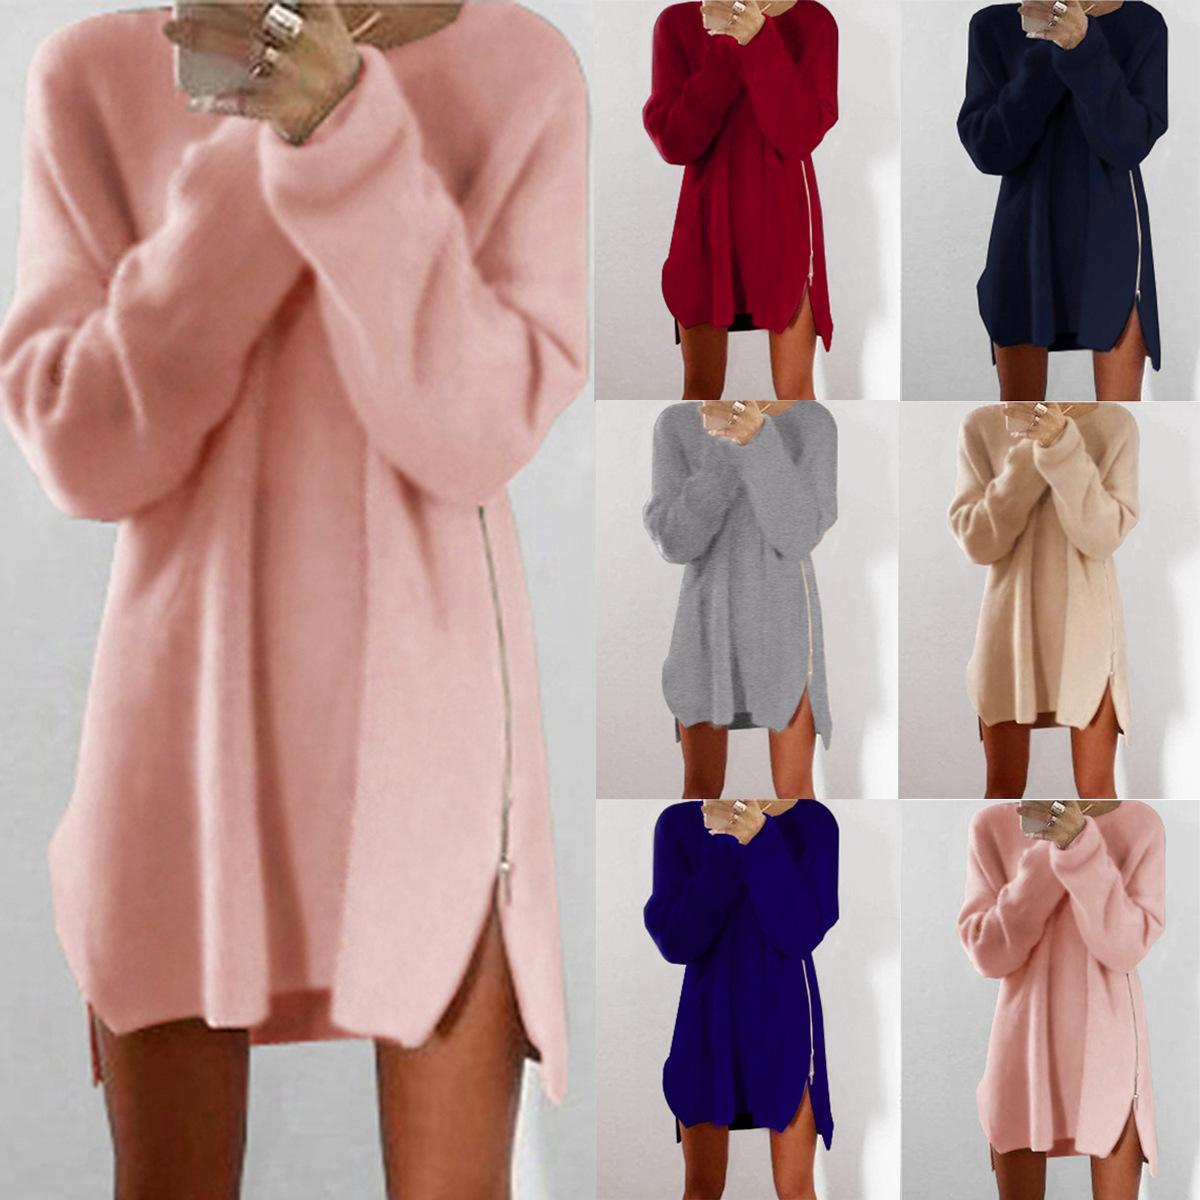 Autumn Winter Solid Knitted Cotton Sweater Dresses Women Fashion Loose O-neck Pullover Female Knitted Dress Vestidos 4XL 5XL